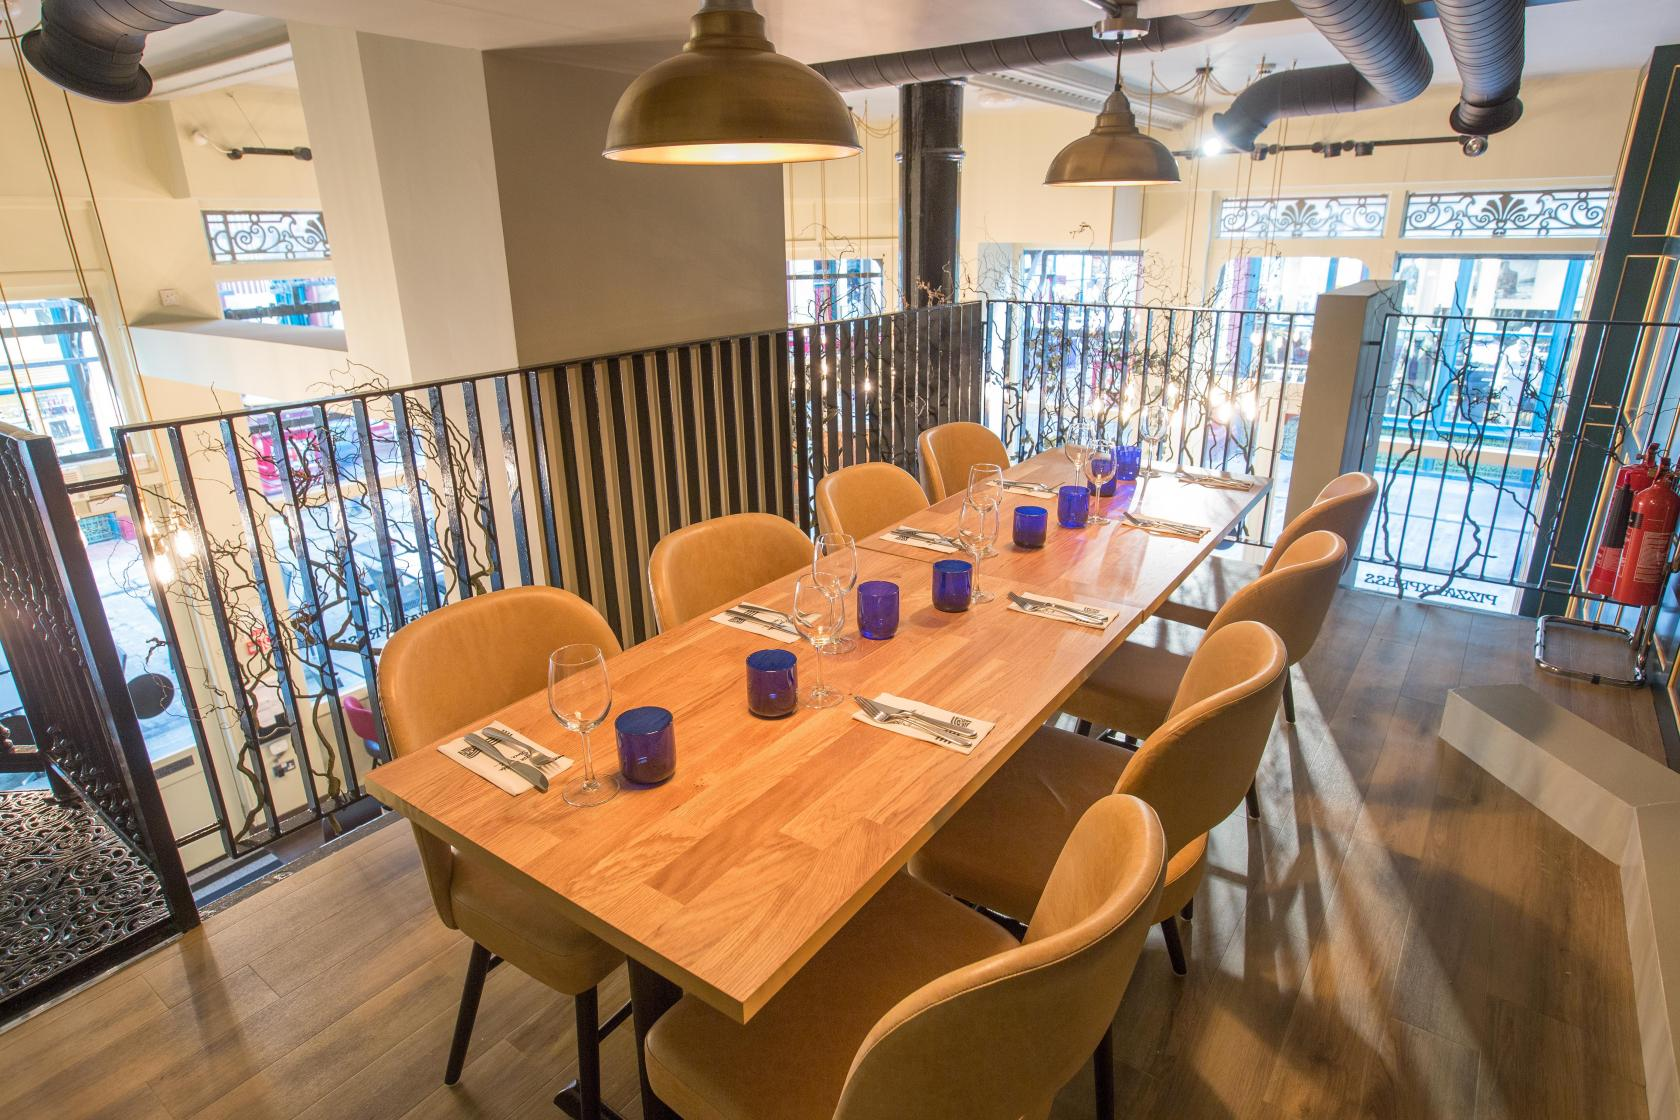 Book mezzanine semi private dining at pizzaexpress for Best private dining rooms central london